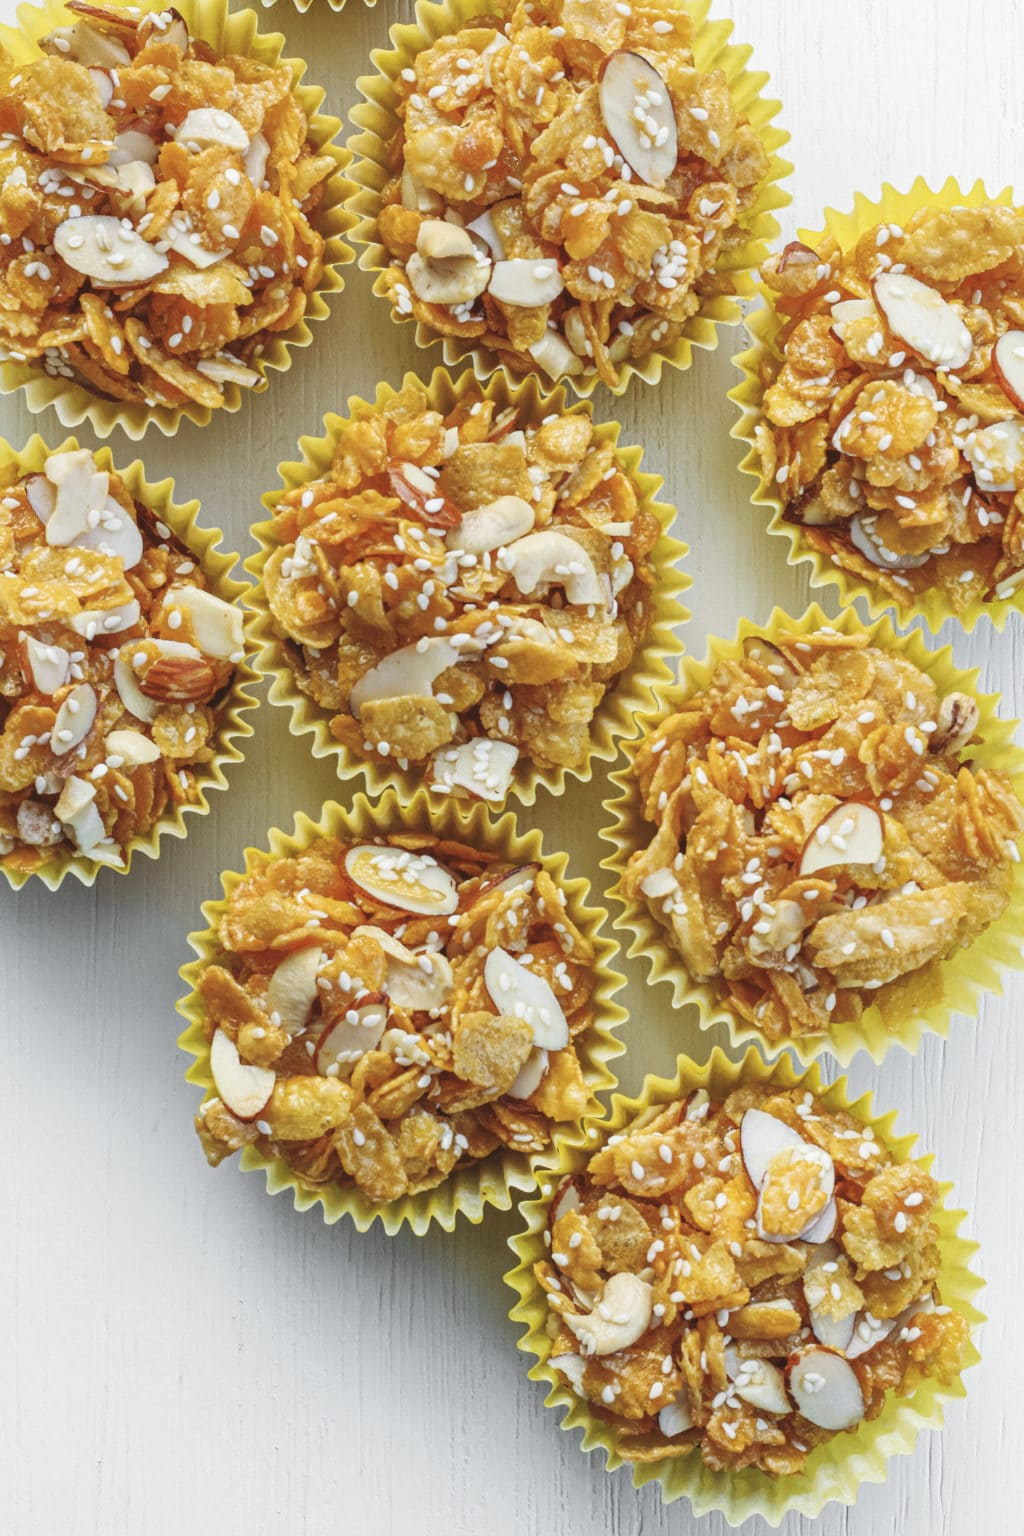 Honey joys on a white table. The honey joys are made with sliced almonds, sesame seeds, cornflakes and cashews.